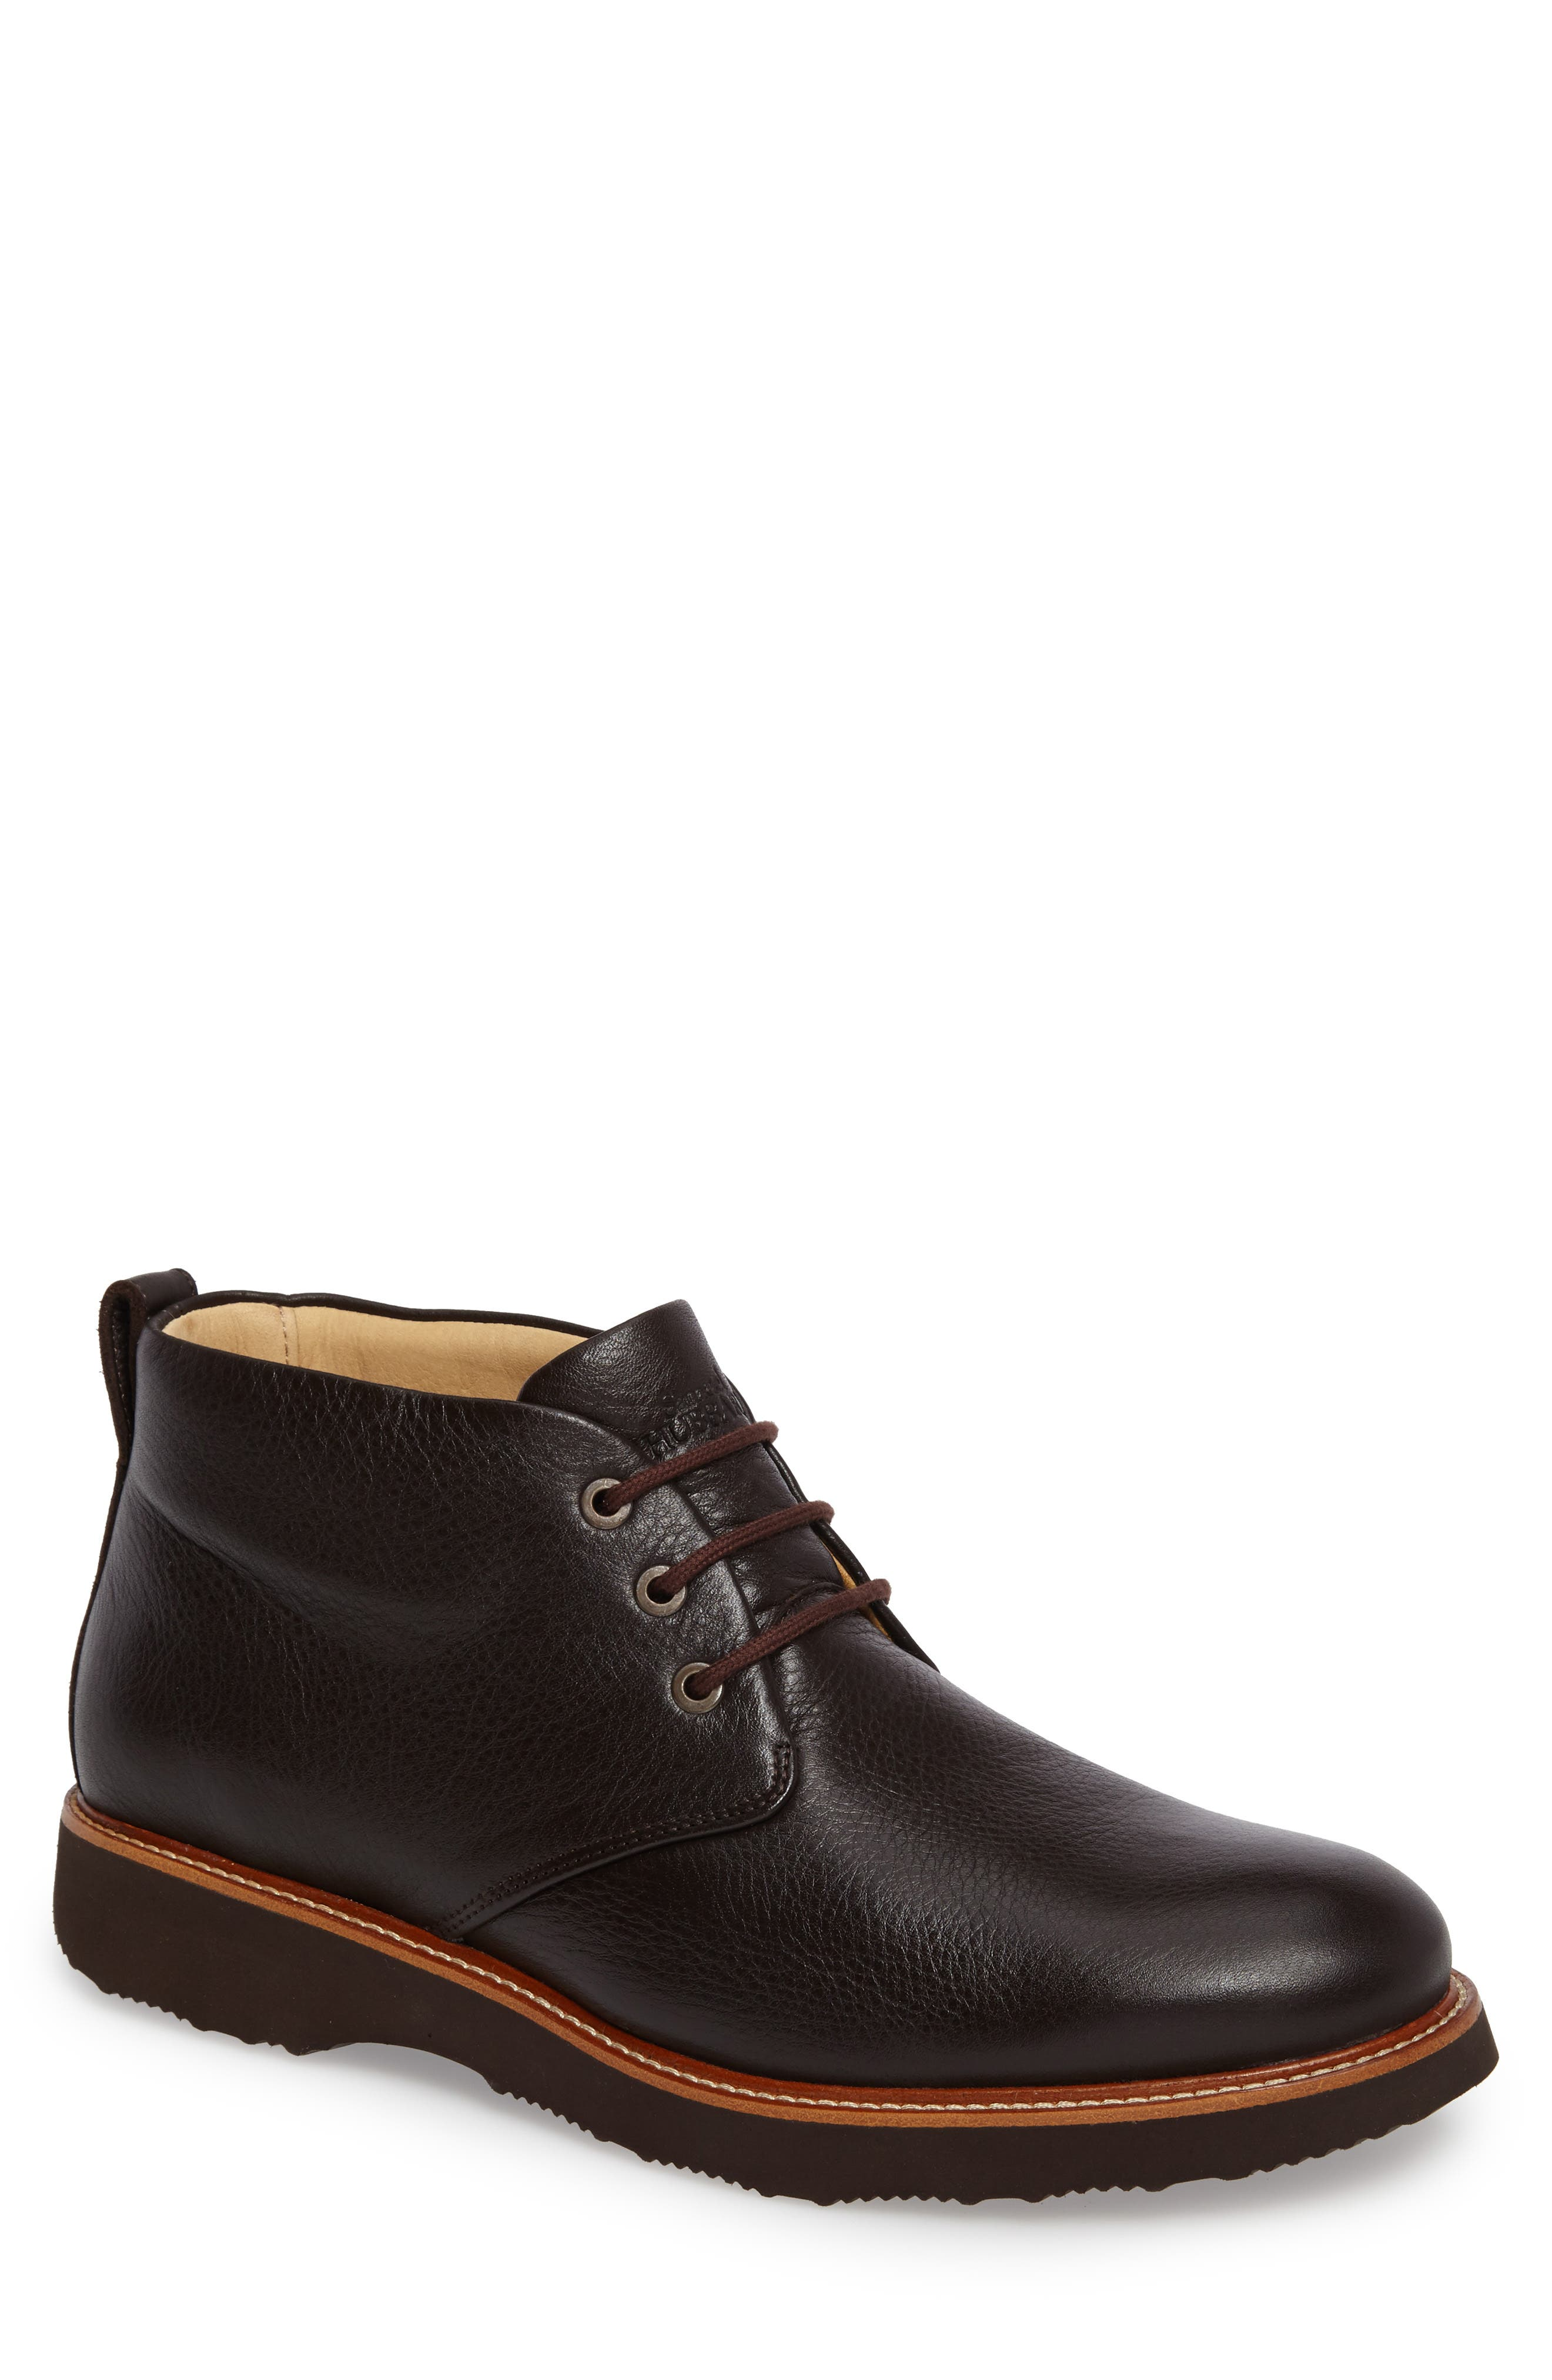 Re-Boot Chukka Boot,                             Main thumbnail 1, color,                             Espresso Leather